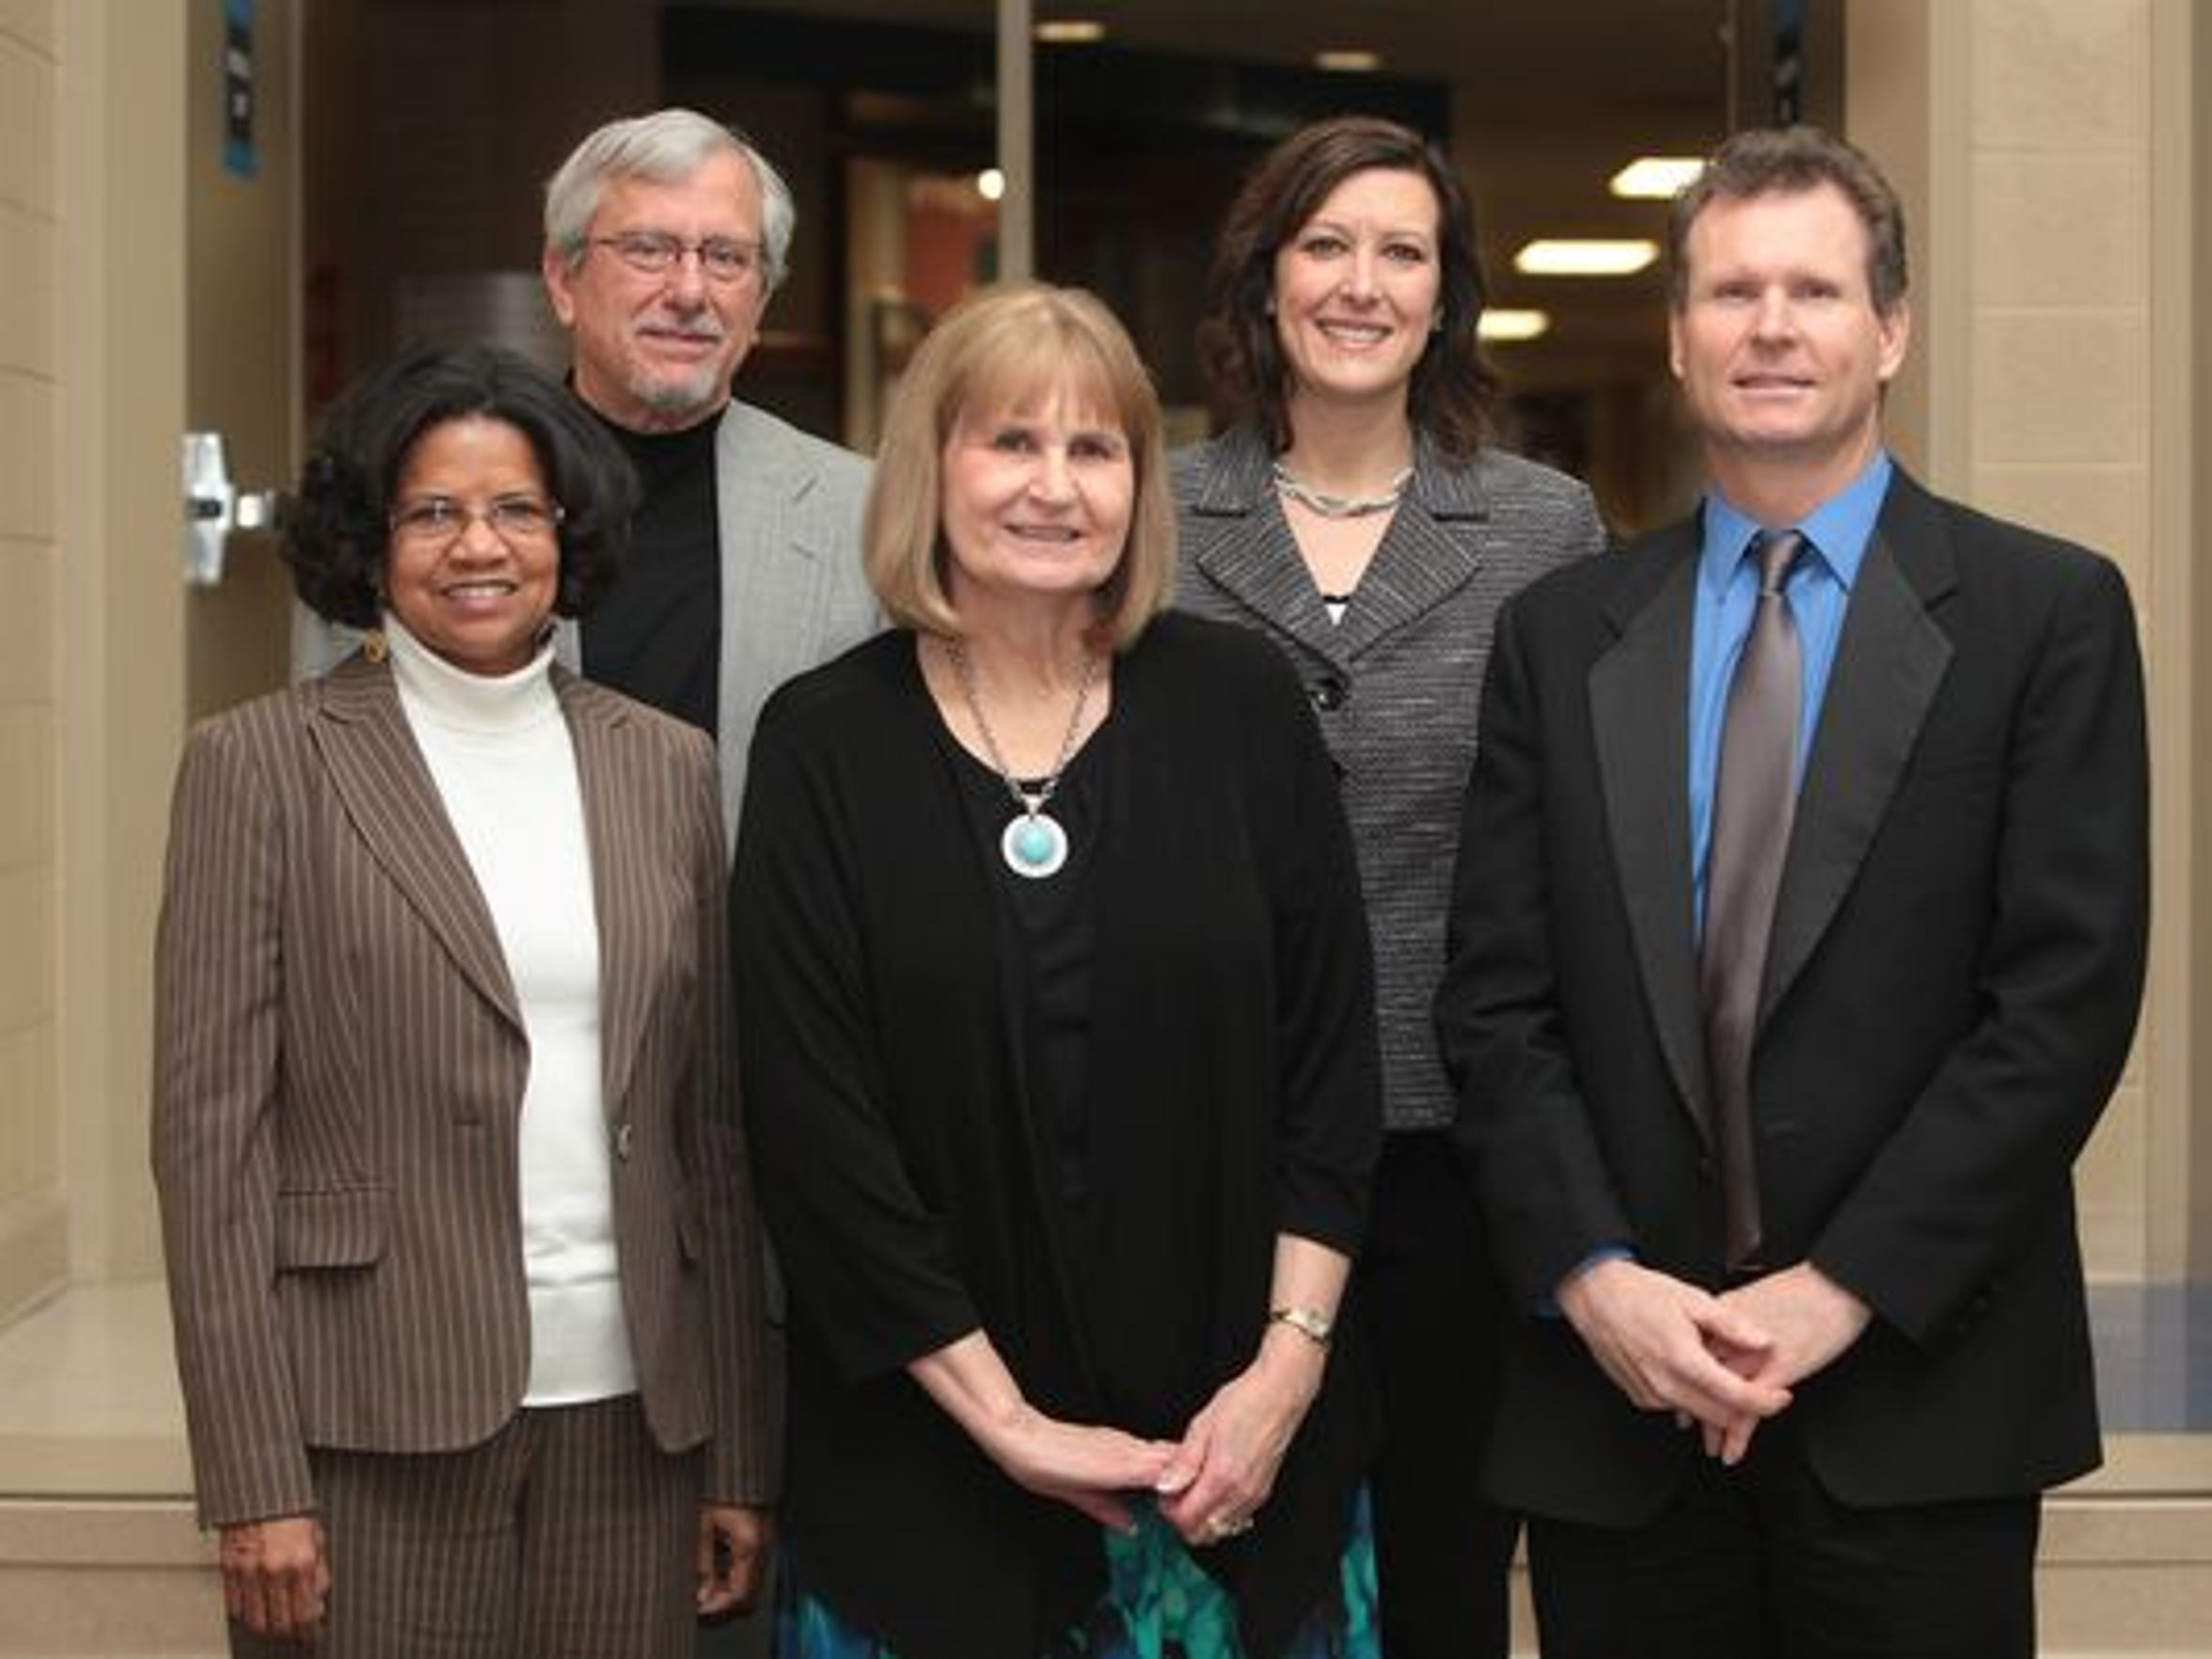 The five candidates for School Board